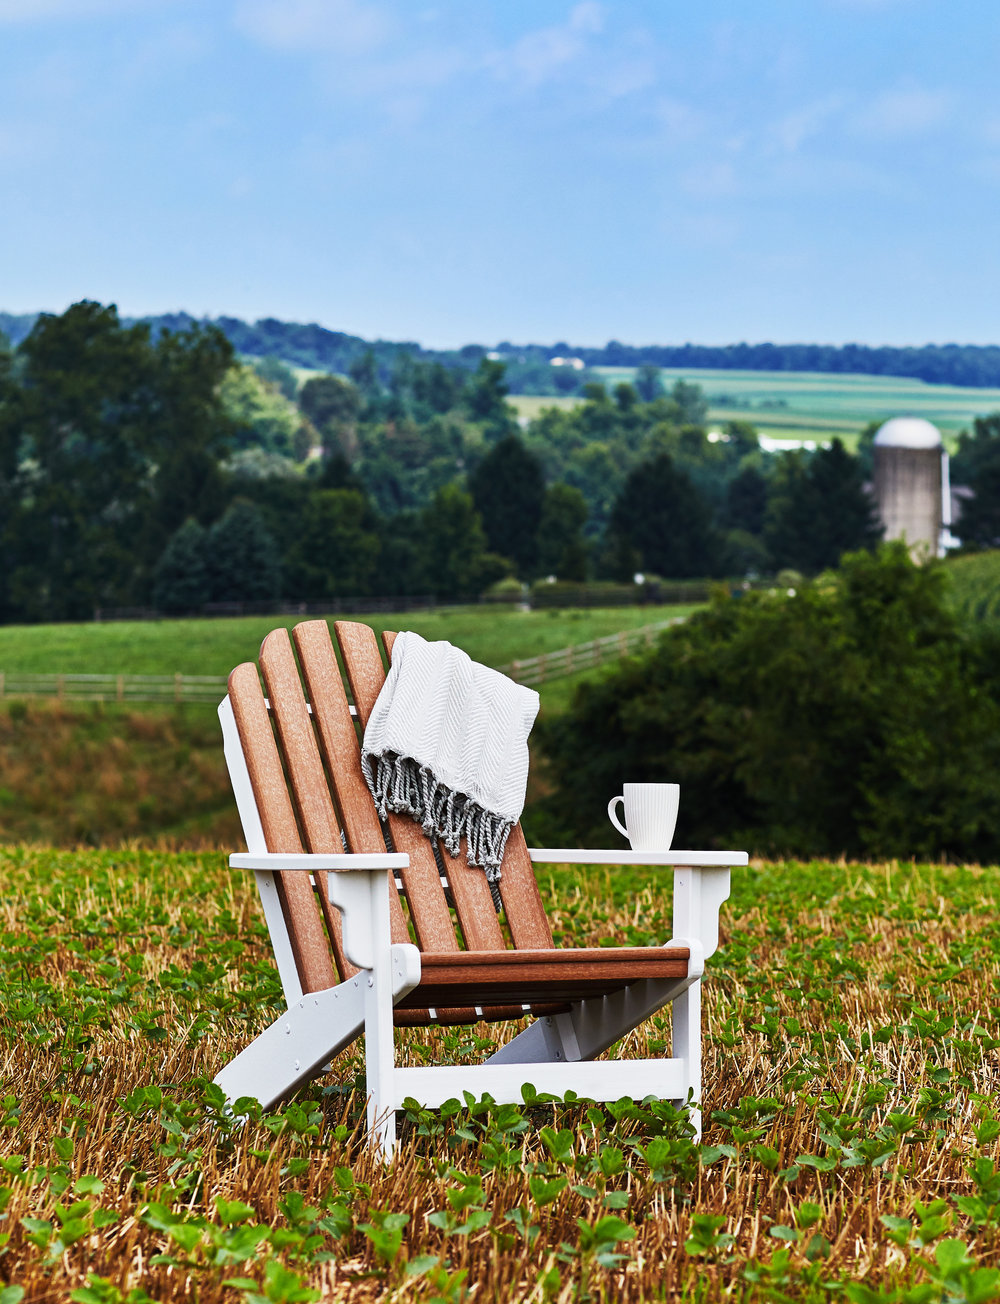 Eco-friendly sustainable Breezesta Shorline Adirondack Chairs made of recycled milk jugs. Durable & maintenance free.